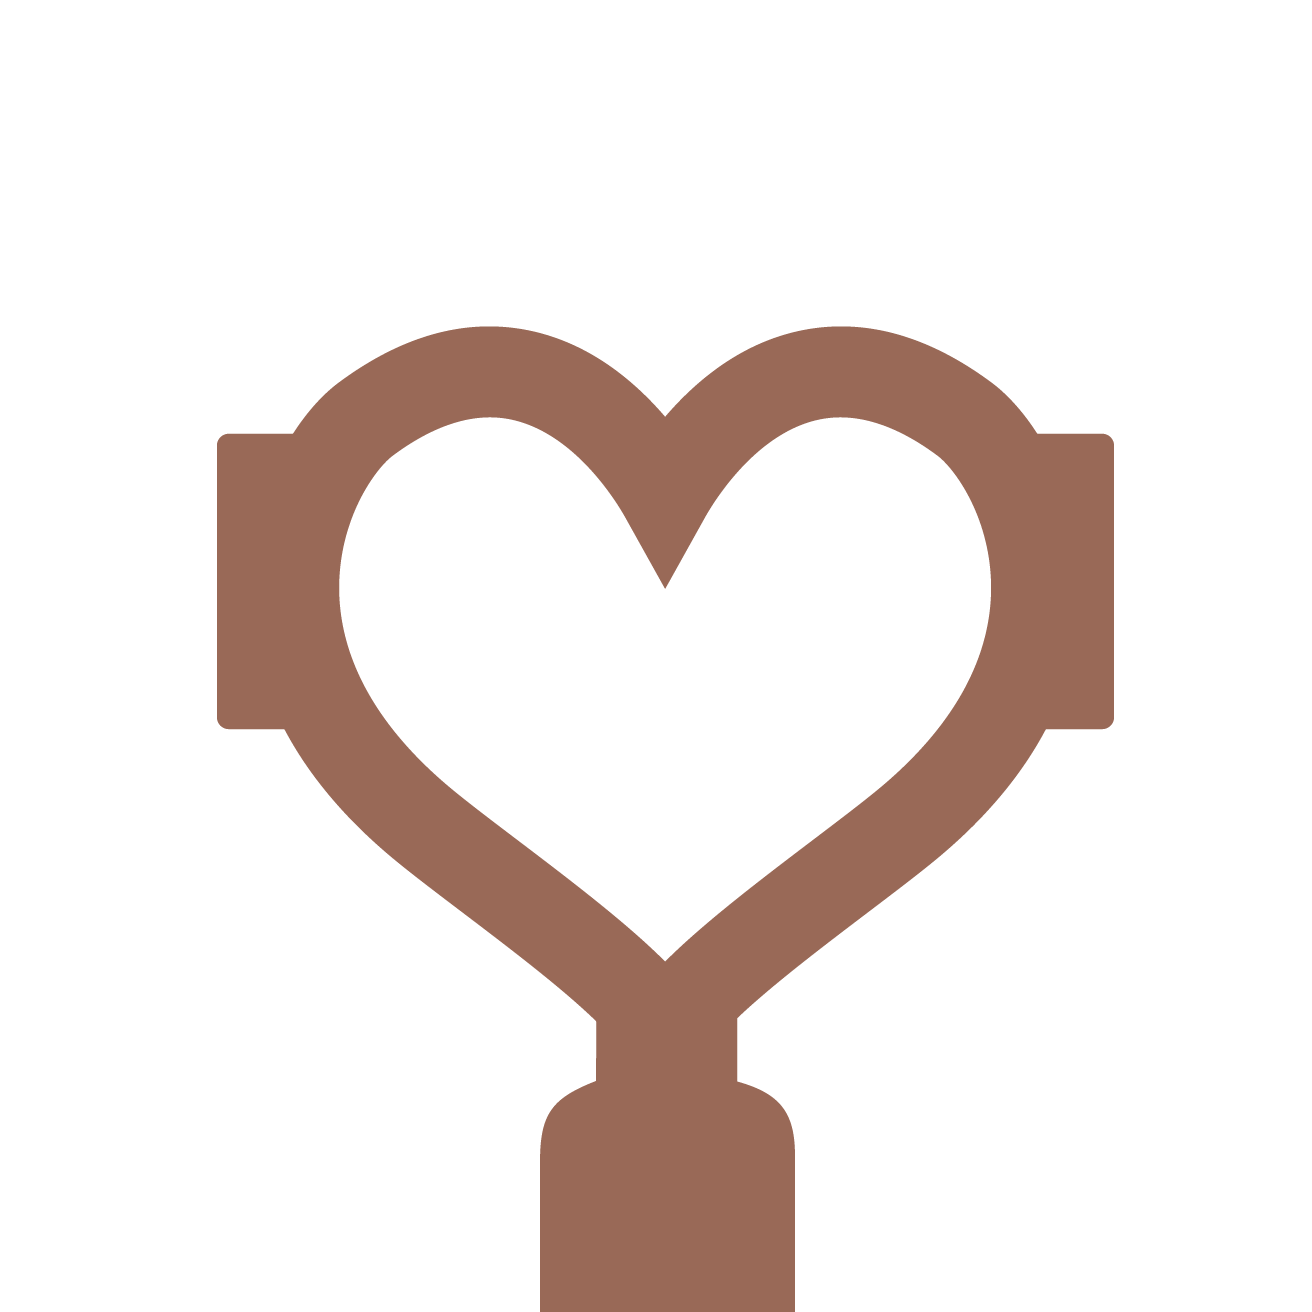 BWT Penguin 2.7l Filter Jug with Filter - Petrol Vida